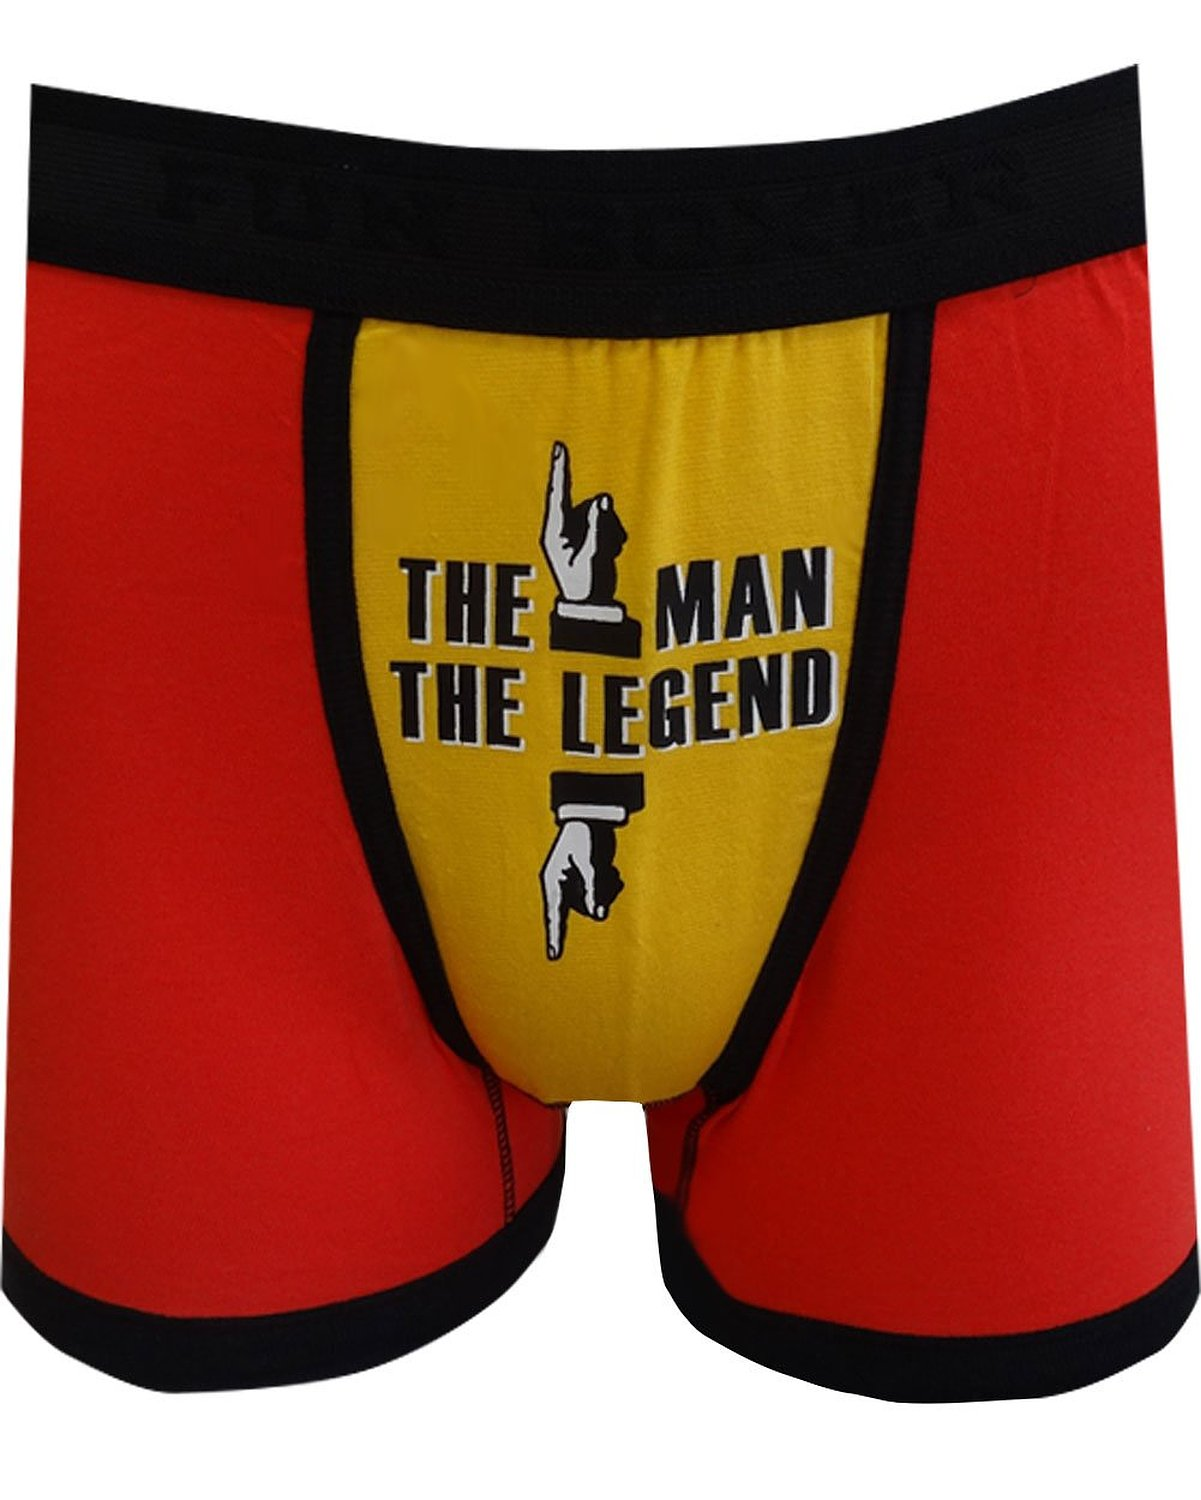 Fun Boxers - The Man The Legend Boxer Briefs (Red/Yellow)